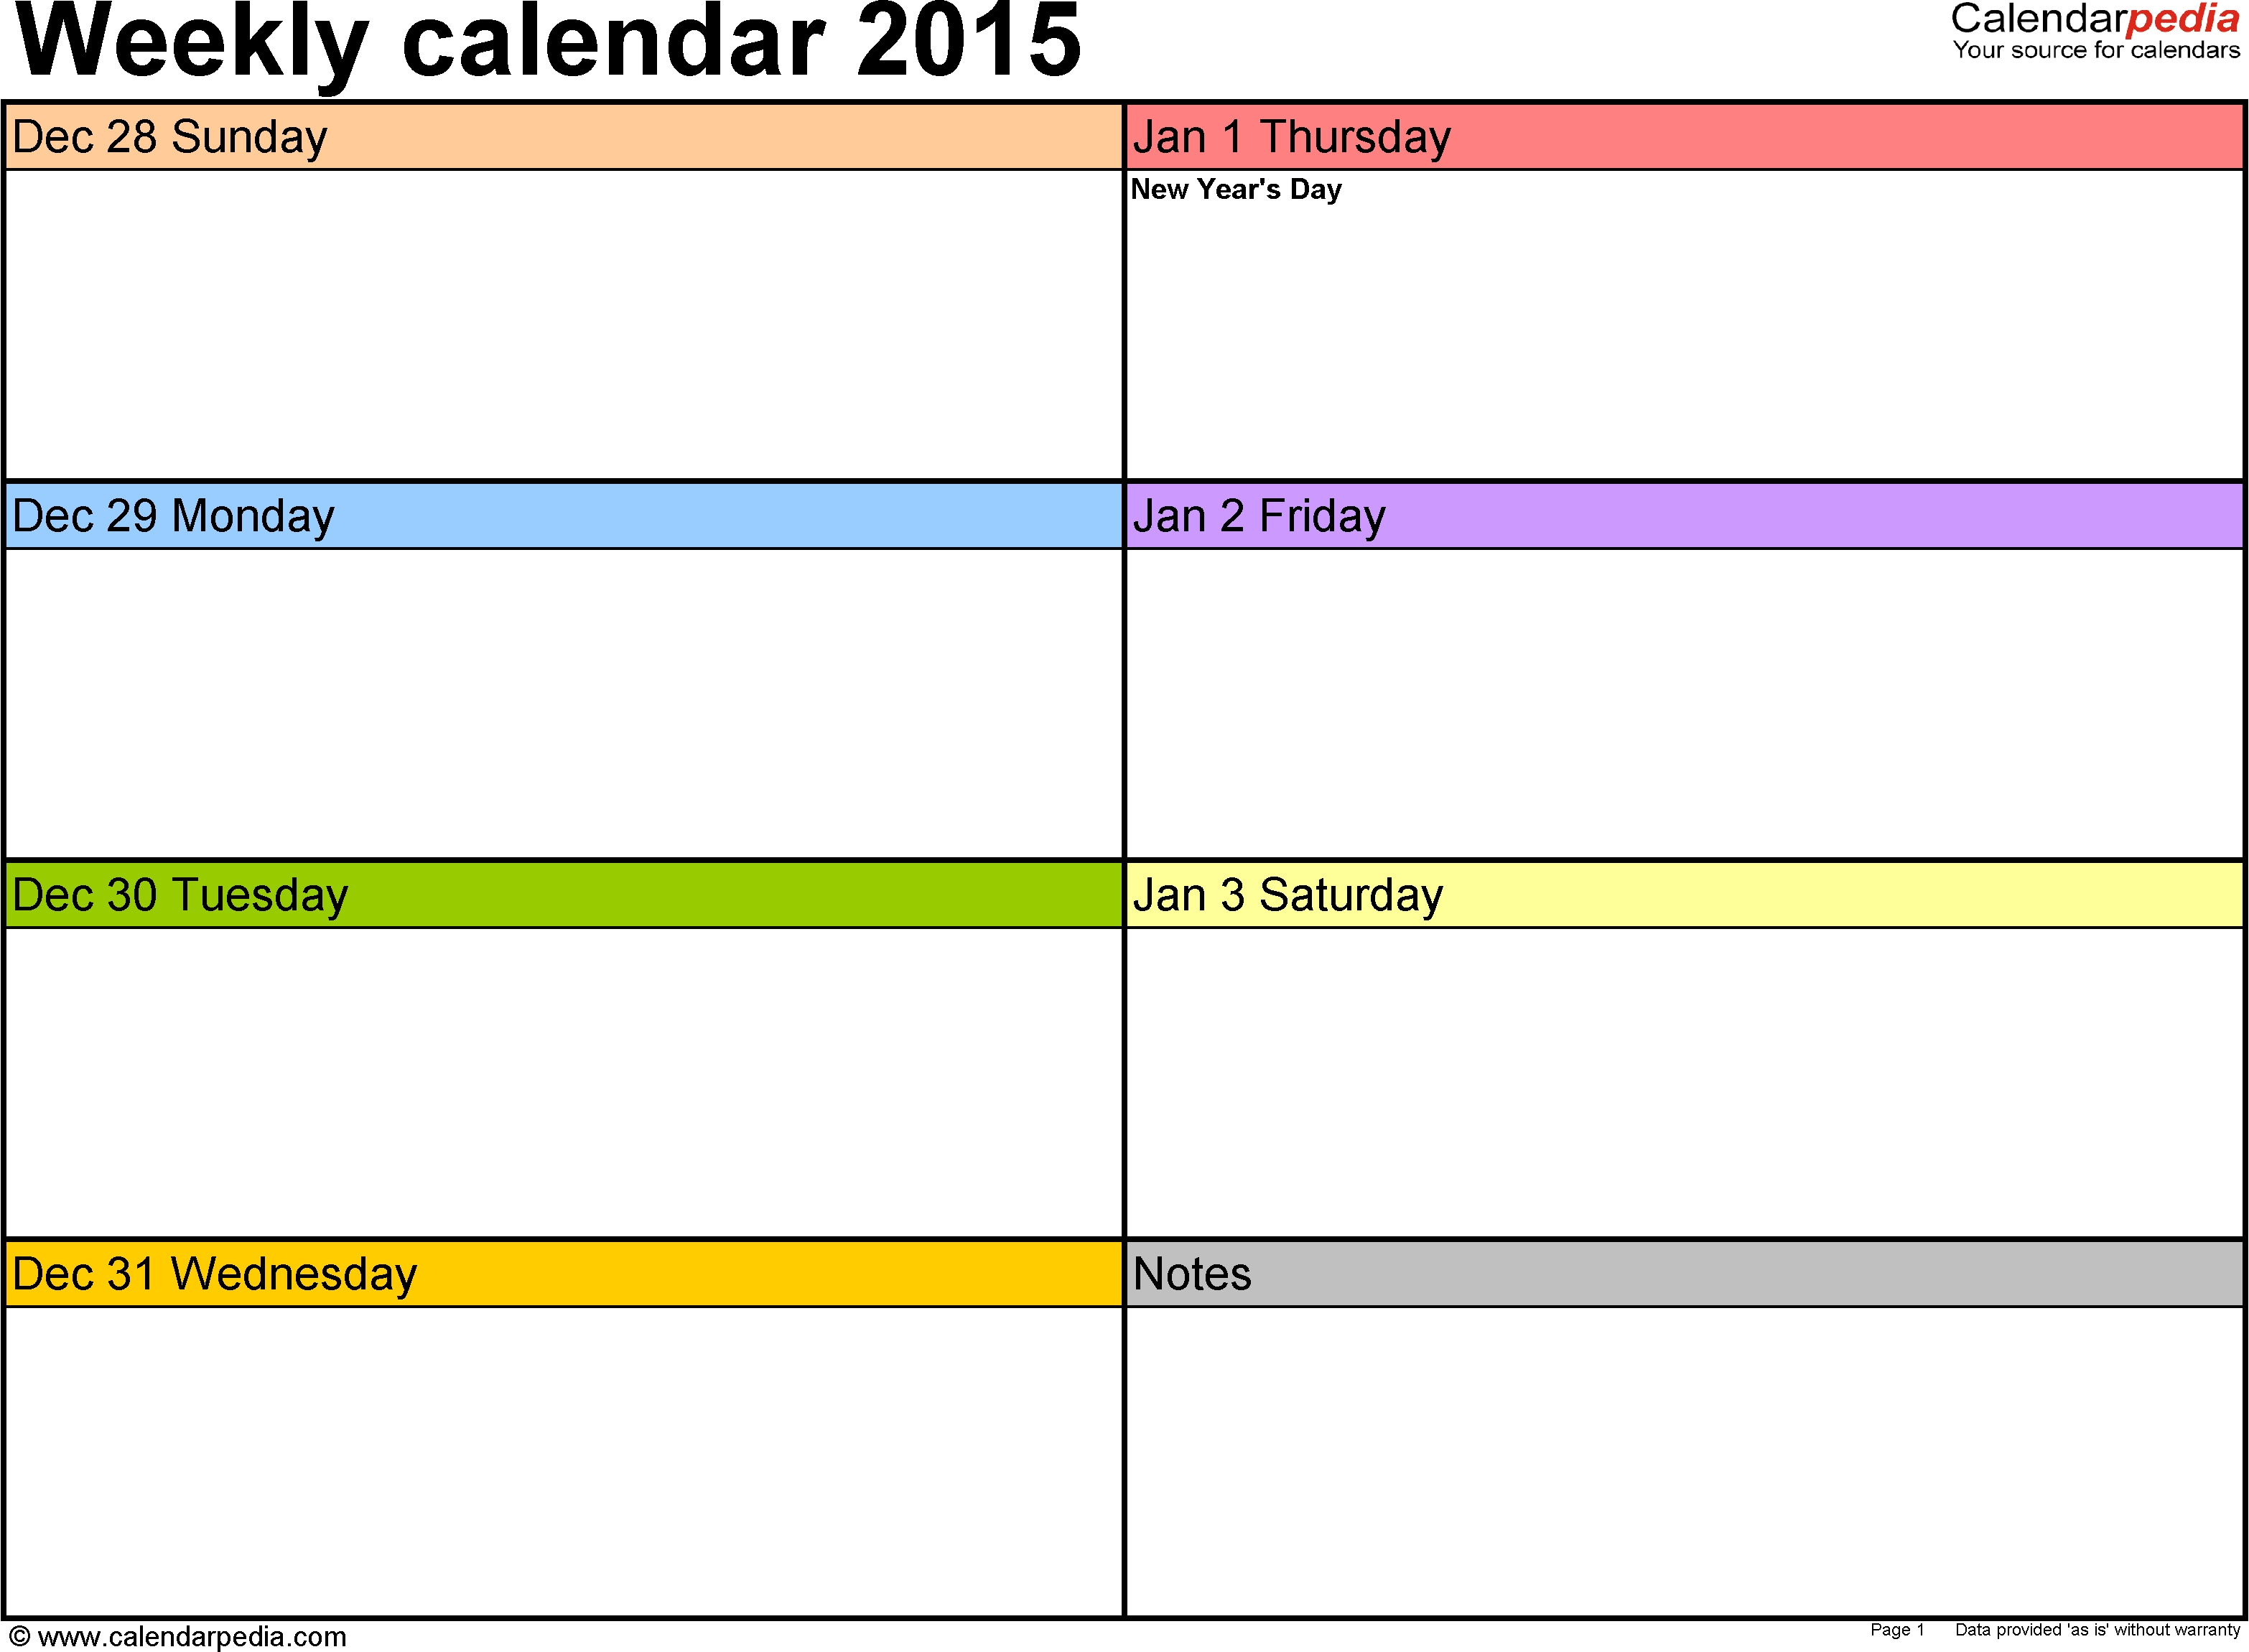 Weekly Calendars 2015 For Word - 12 Free Printable Templates